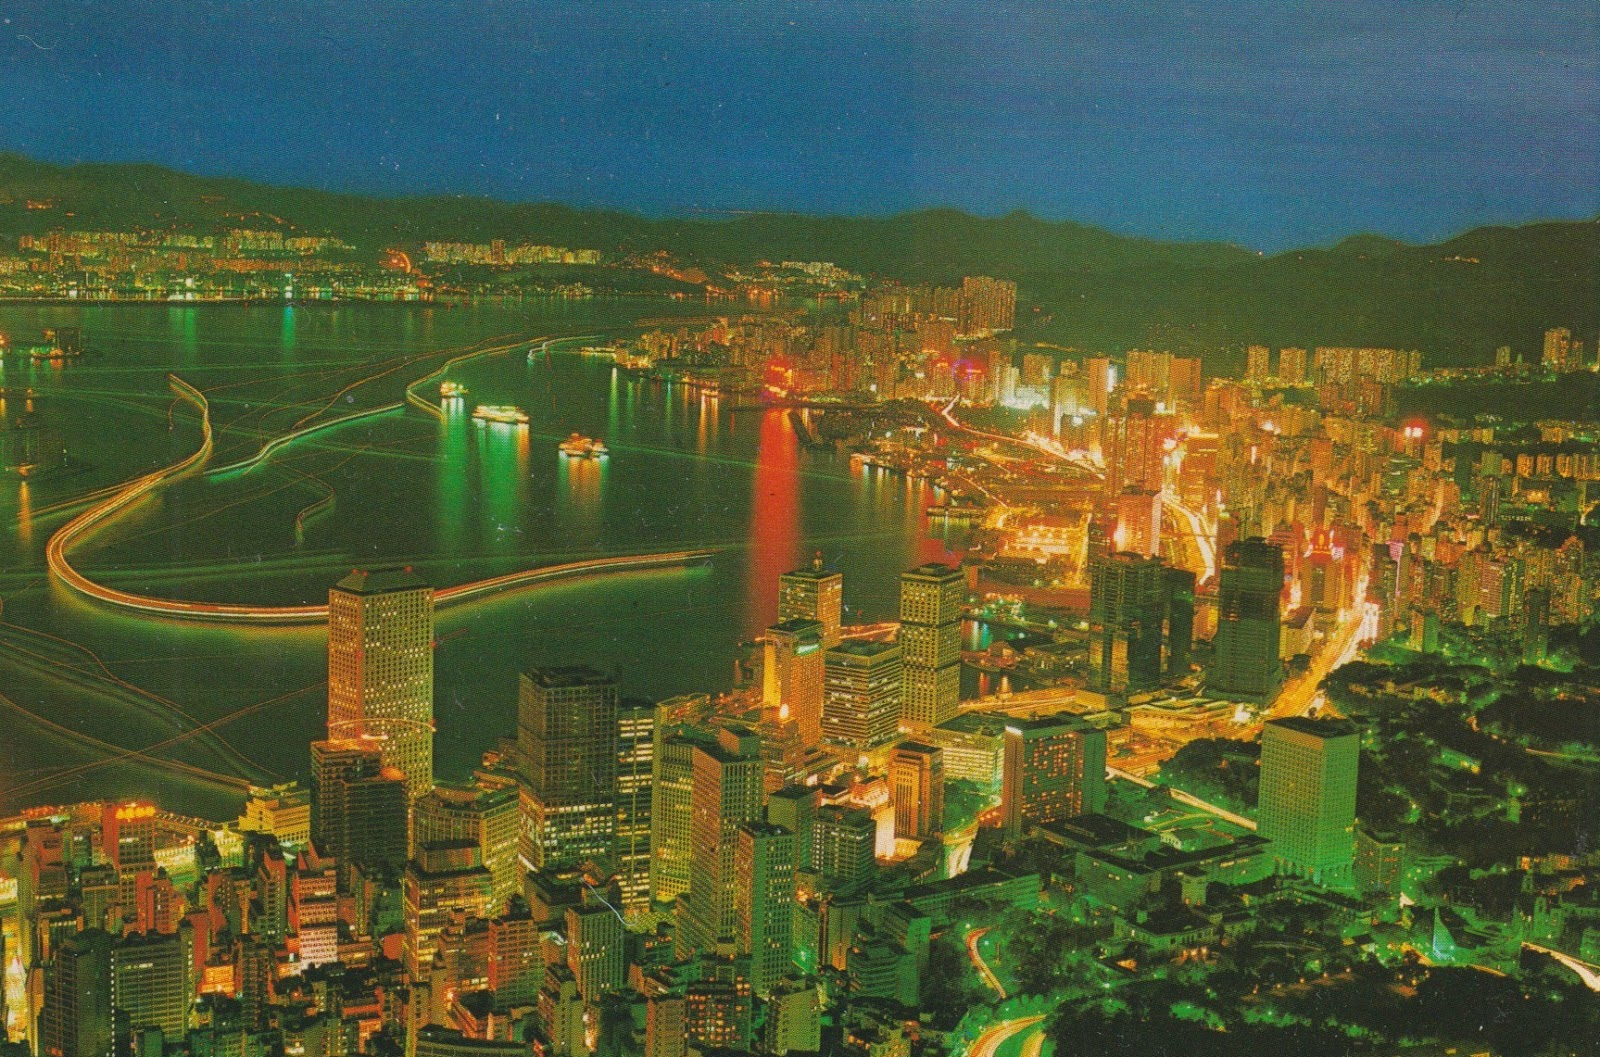 these hong kong postcards remind me of new years fireworks with all their bright lights and colors